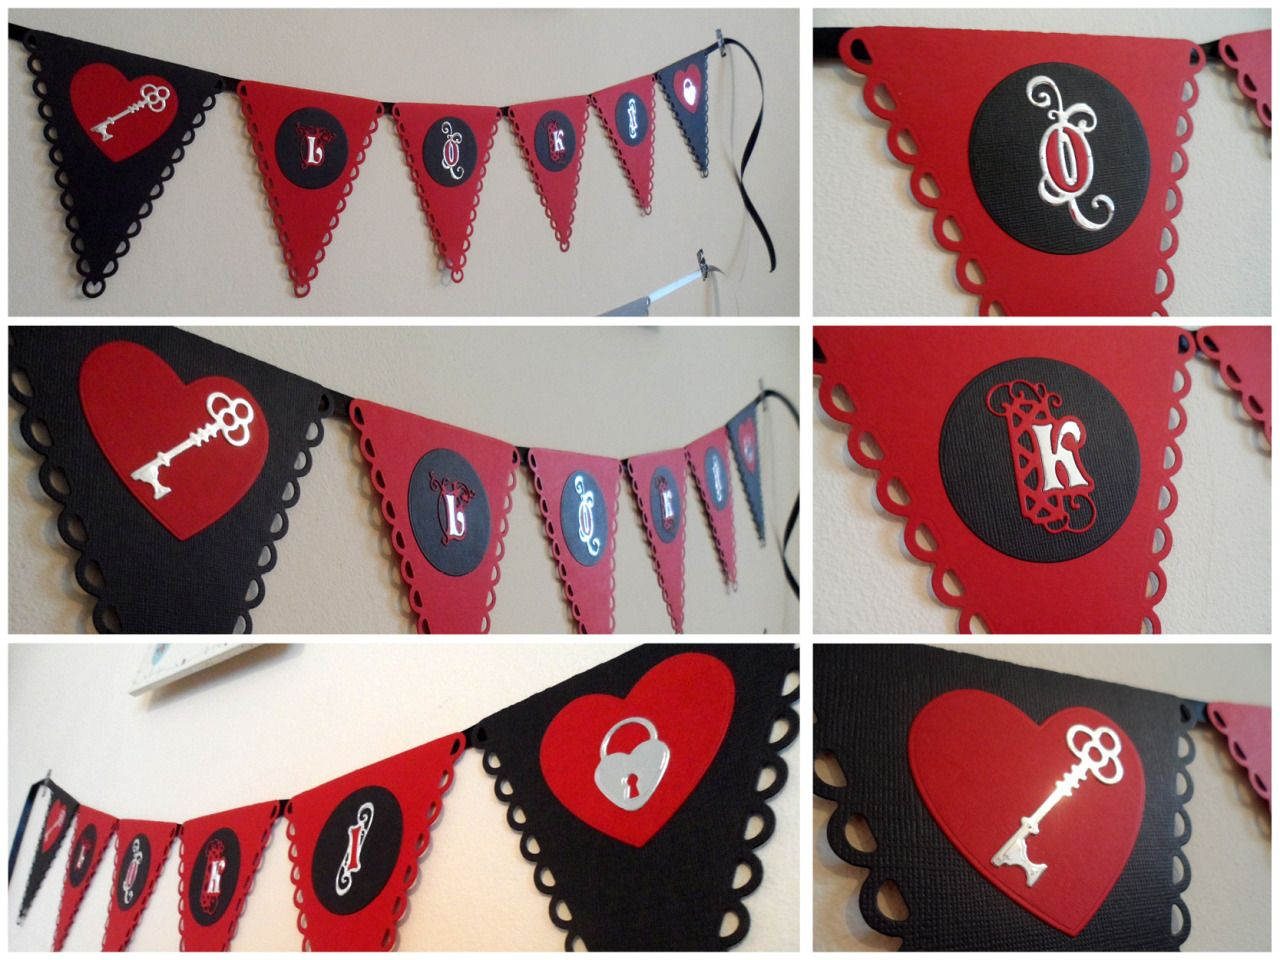 PERSONALISED banner - Fairy Tale paper bunting with illuminated lettering, choose word, choose colours. #fairytale #bunting #personalise